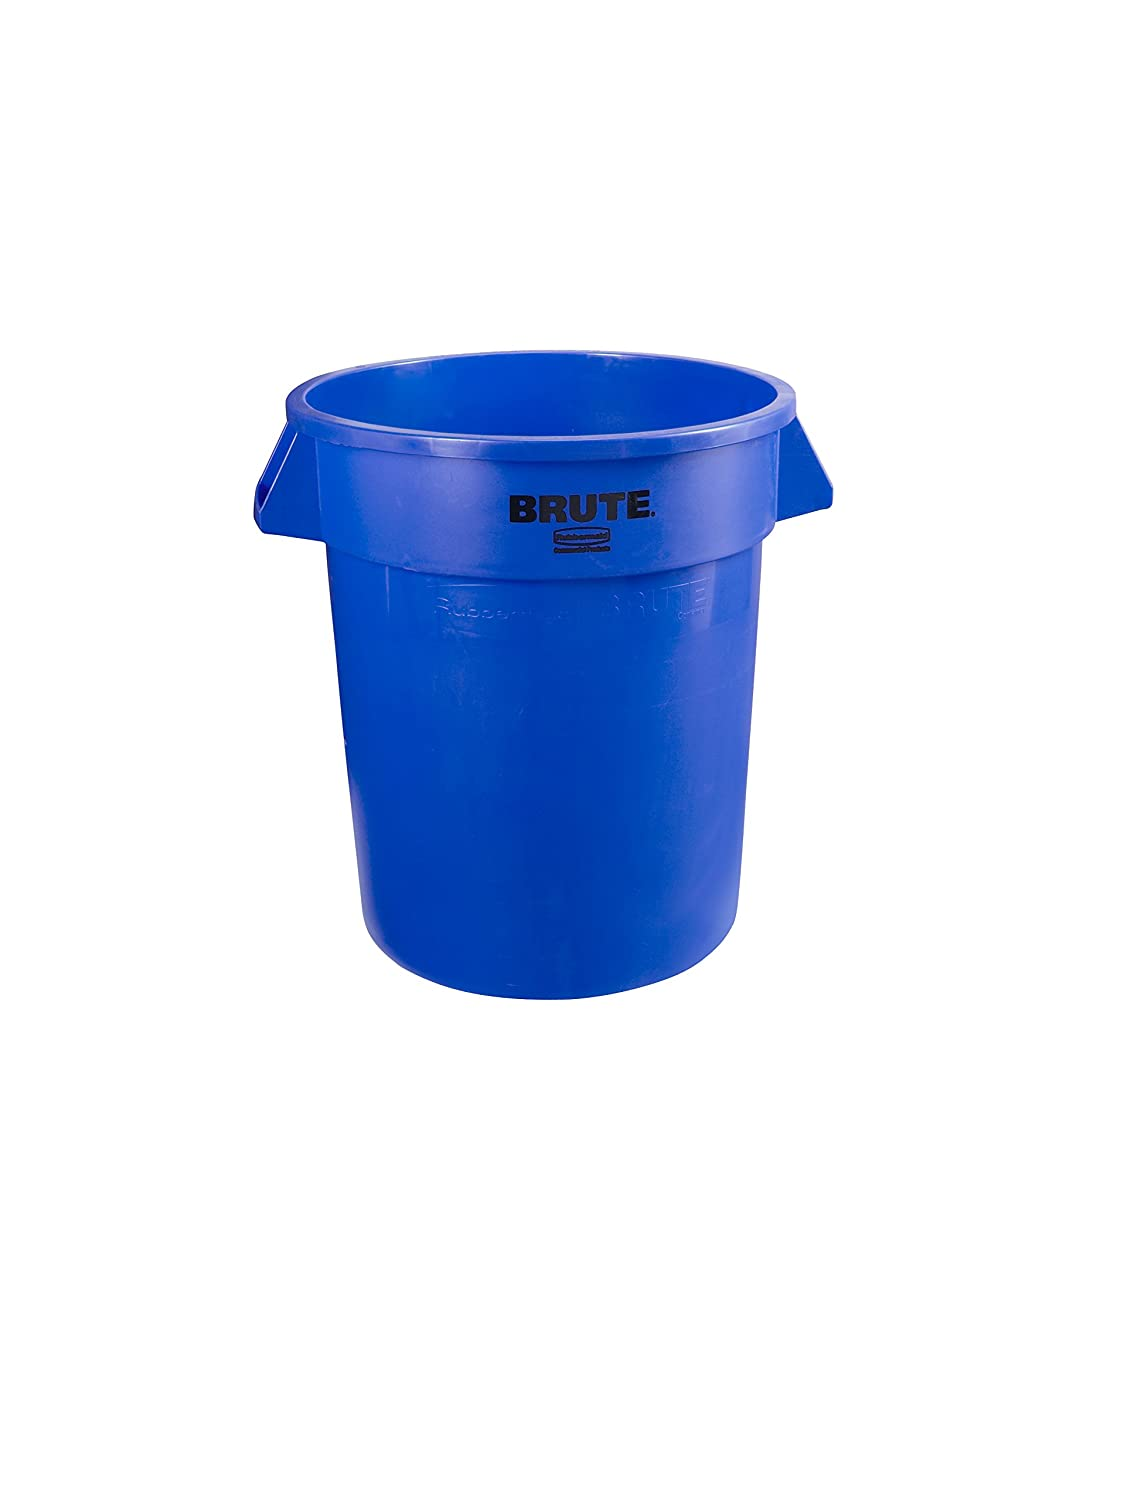 Rubbermaid Commercial 1779699 BRUTE Heavy-Duty Round Waste/Utility Container, 10-gallon, Blue